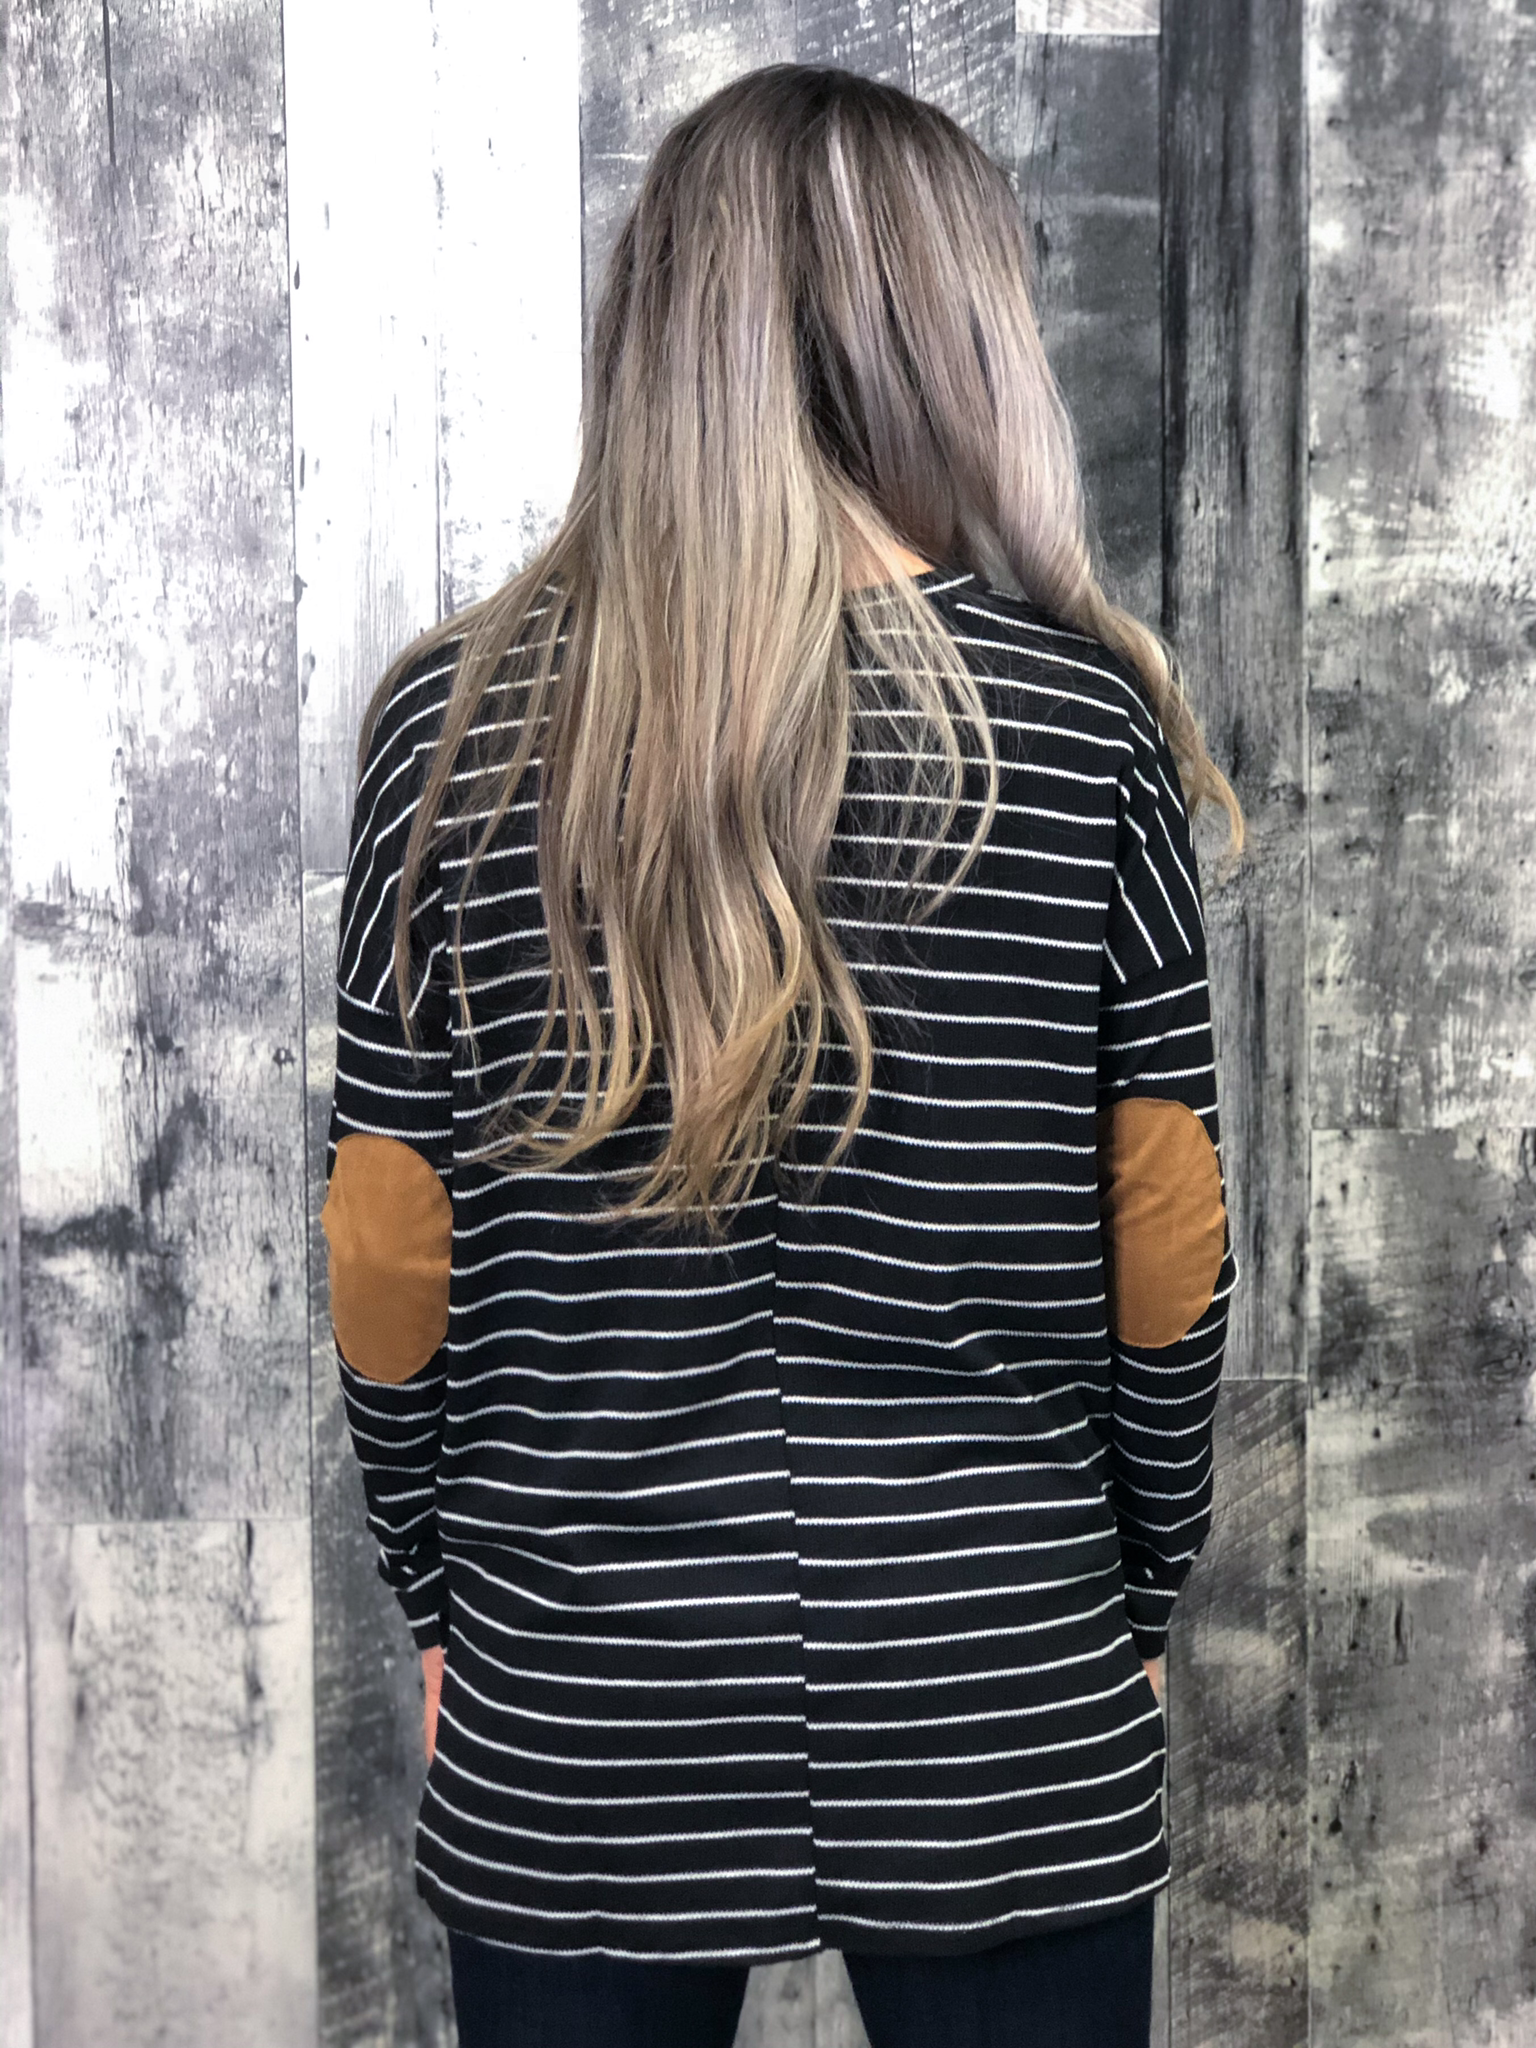 Black & White Striped Long Sleeve with elbow patches